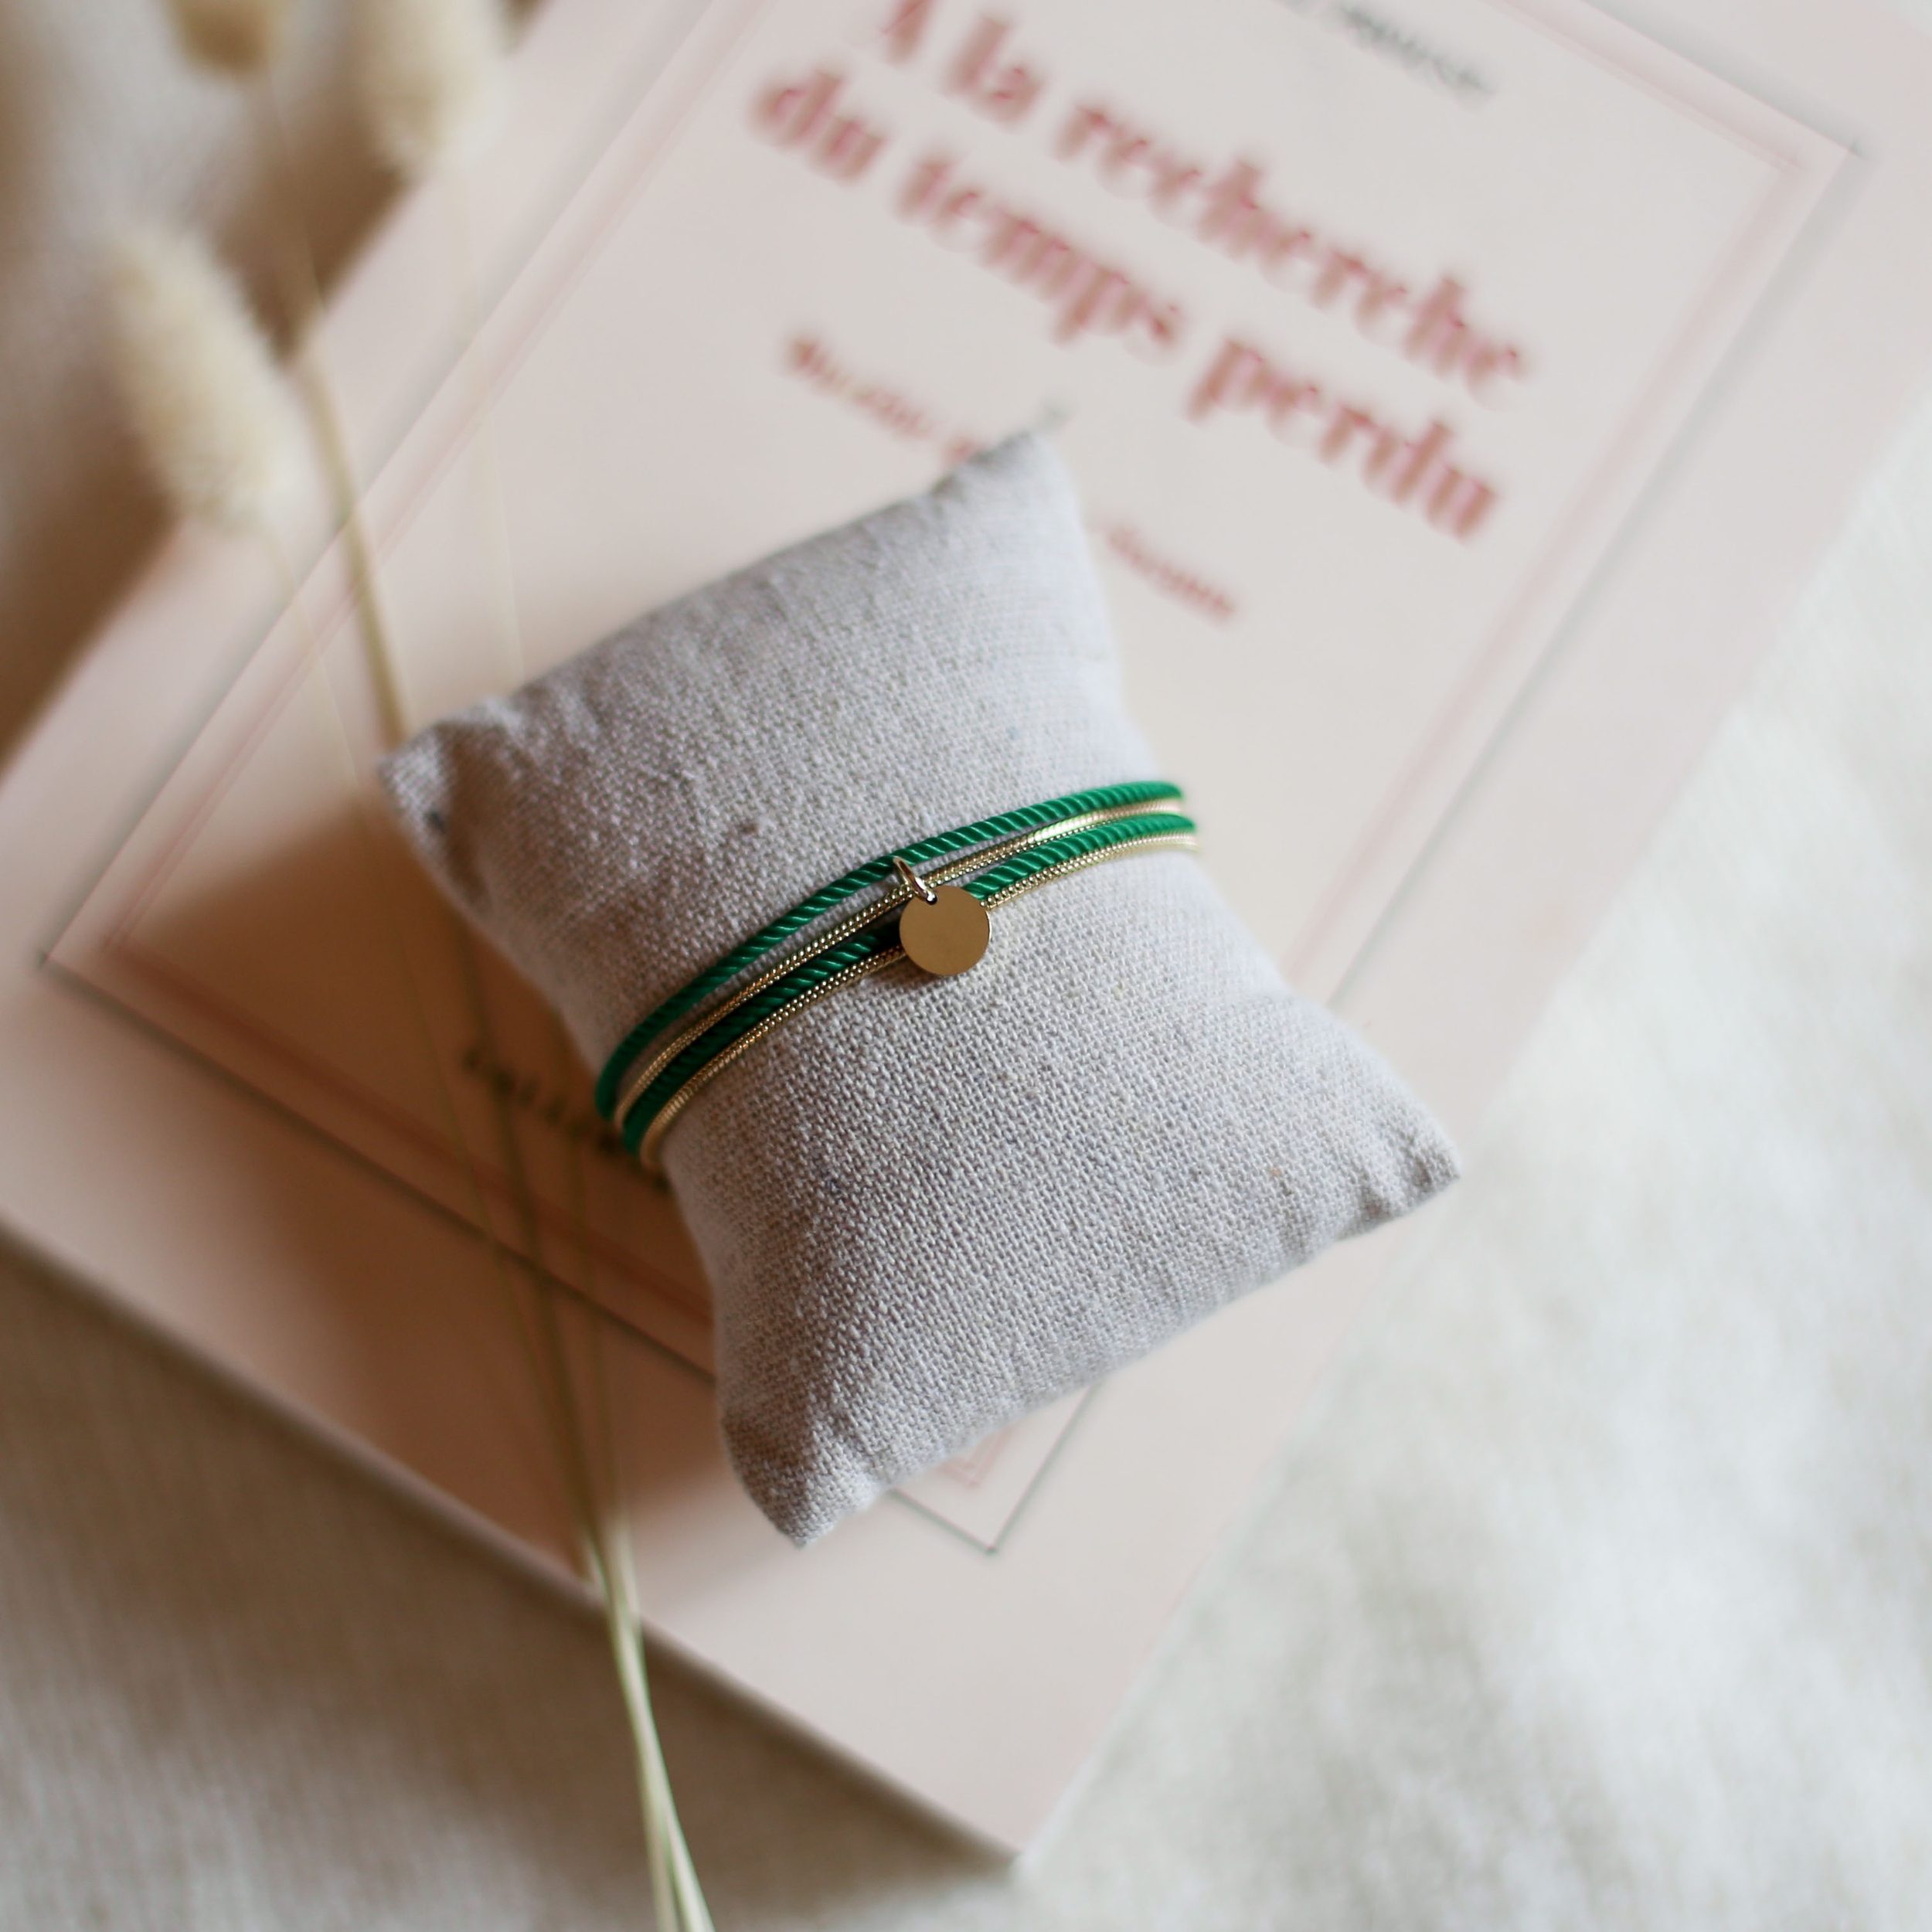 Valentine - Gold with Emerald rope